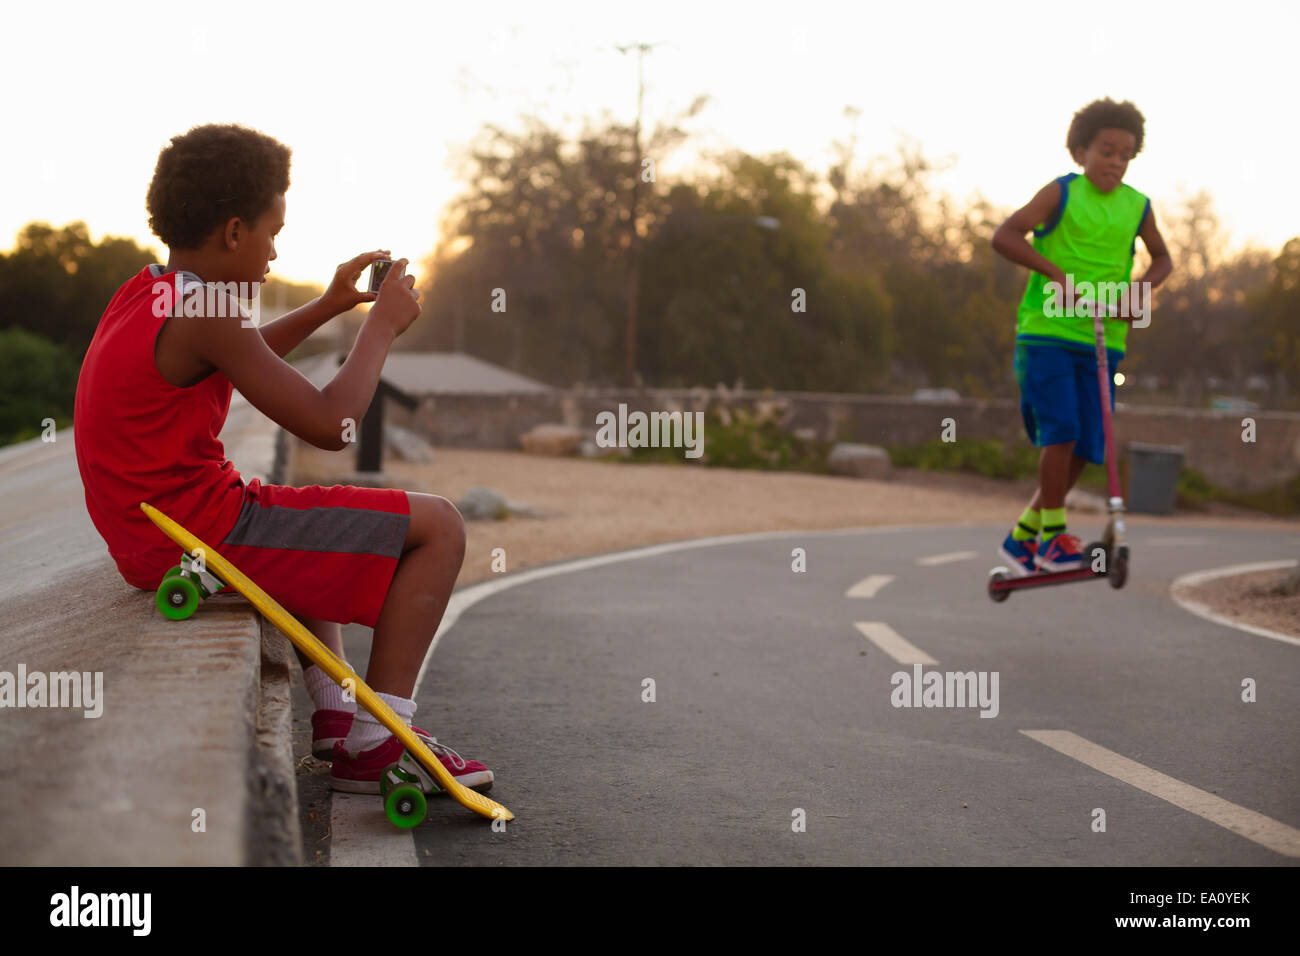 Boy photographing brother doing push scooter jump on road - Stock Image